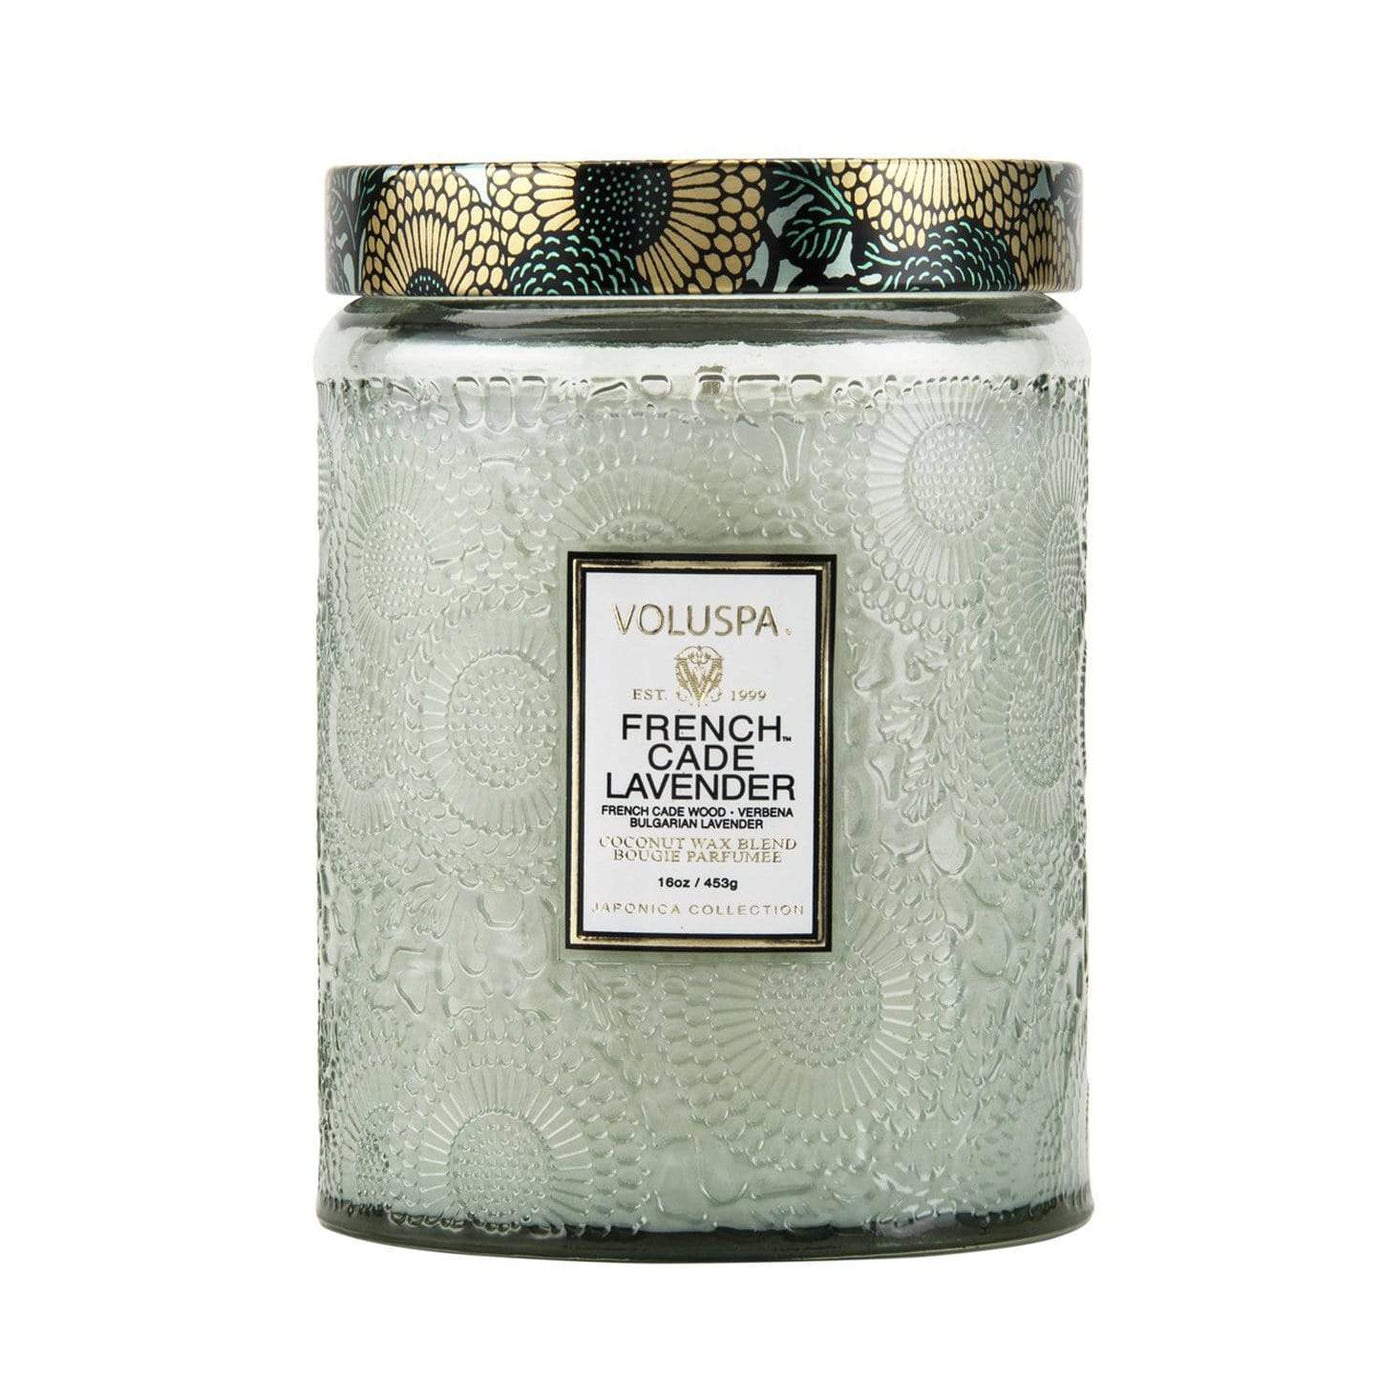 Voluspa Candle 100hr - French Cade Lavender